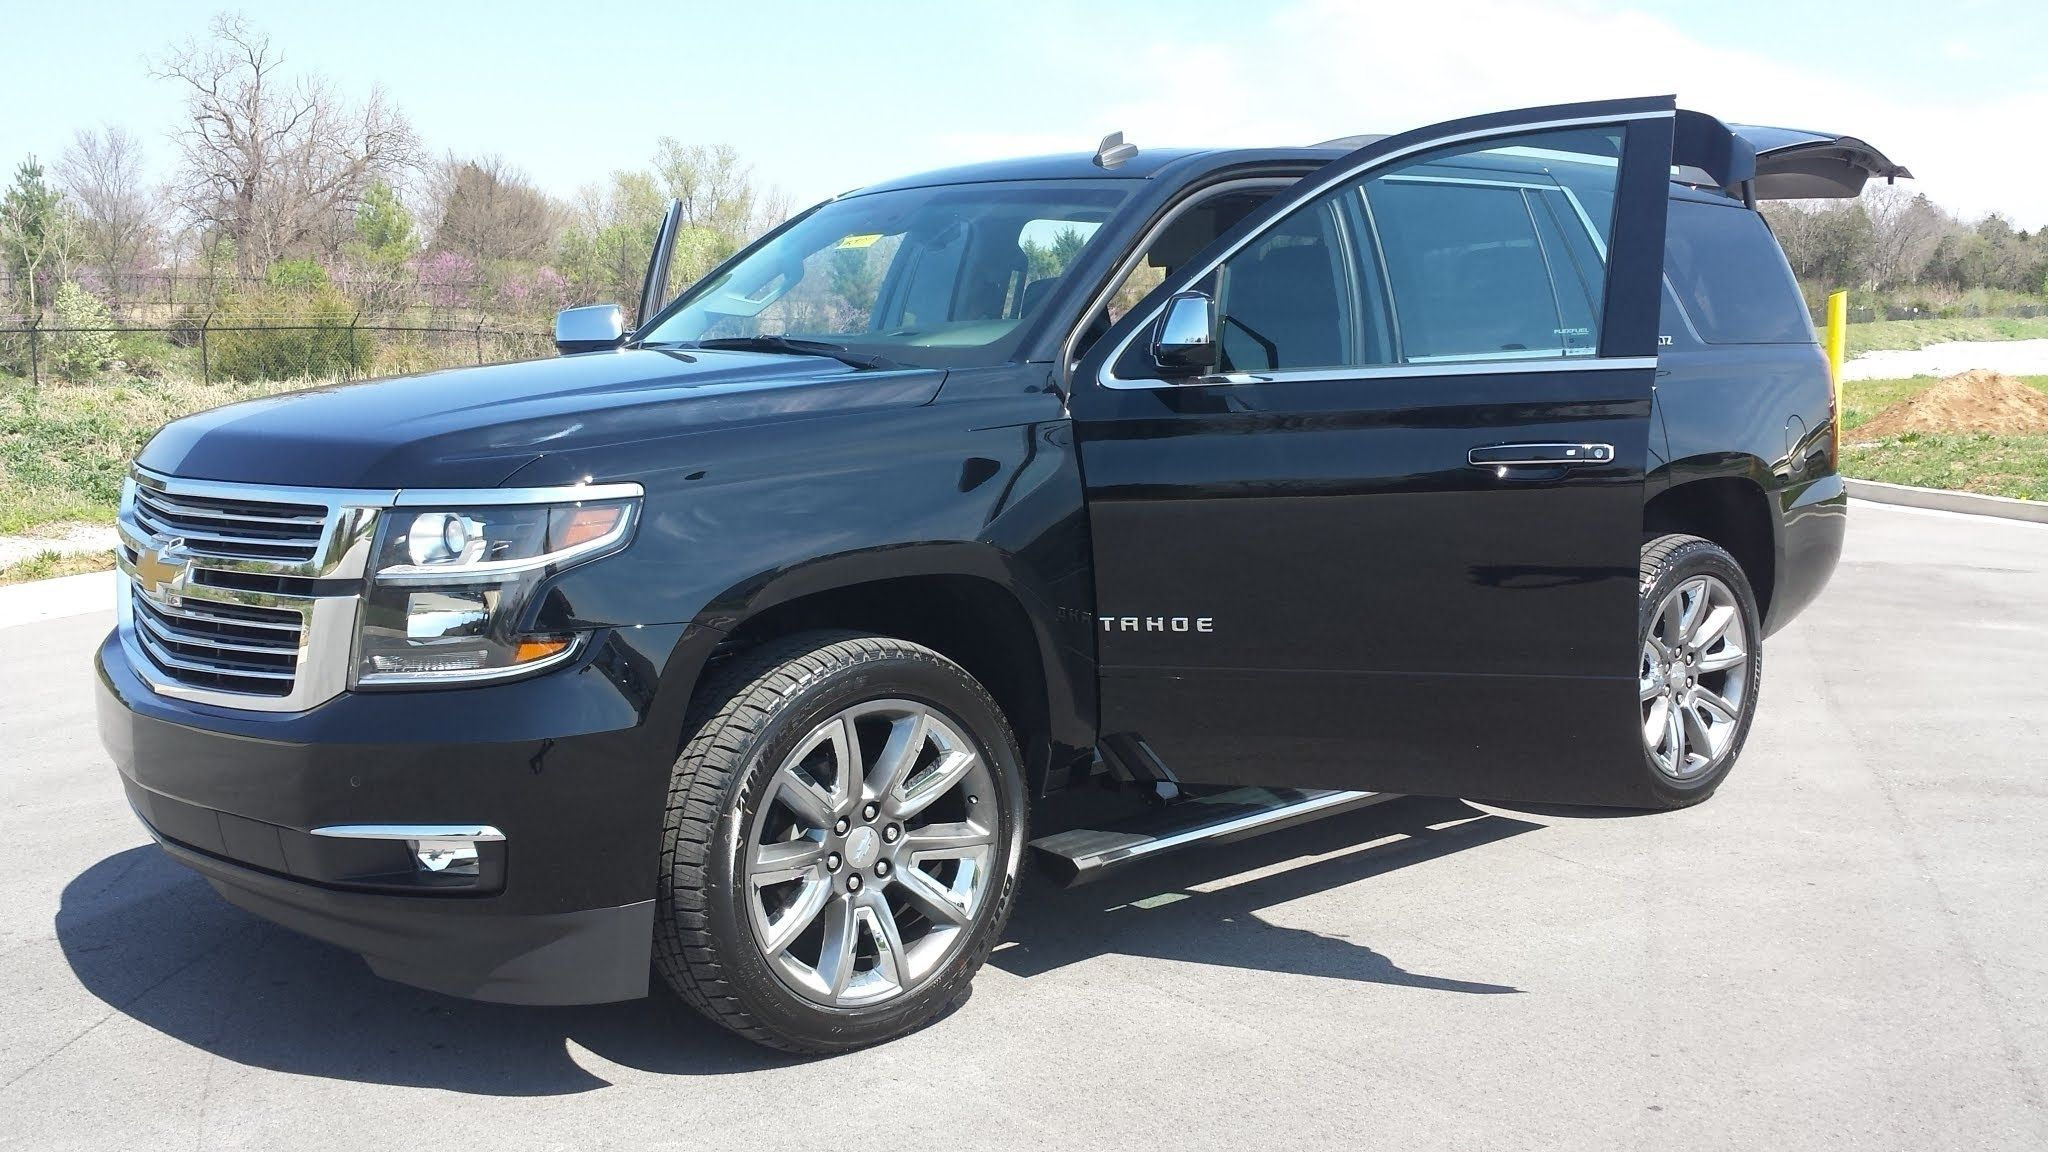 2016 Chevrolet Tahoe Z71 Ss Review Release Date Carros Pinterest And Cars